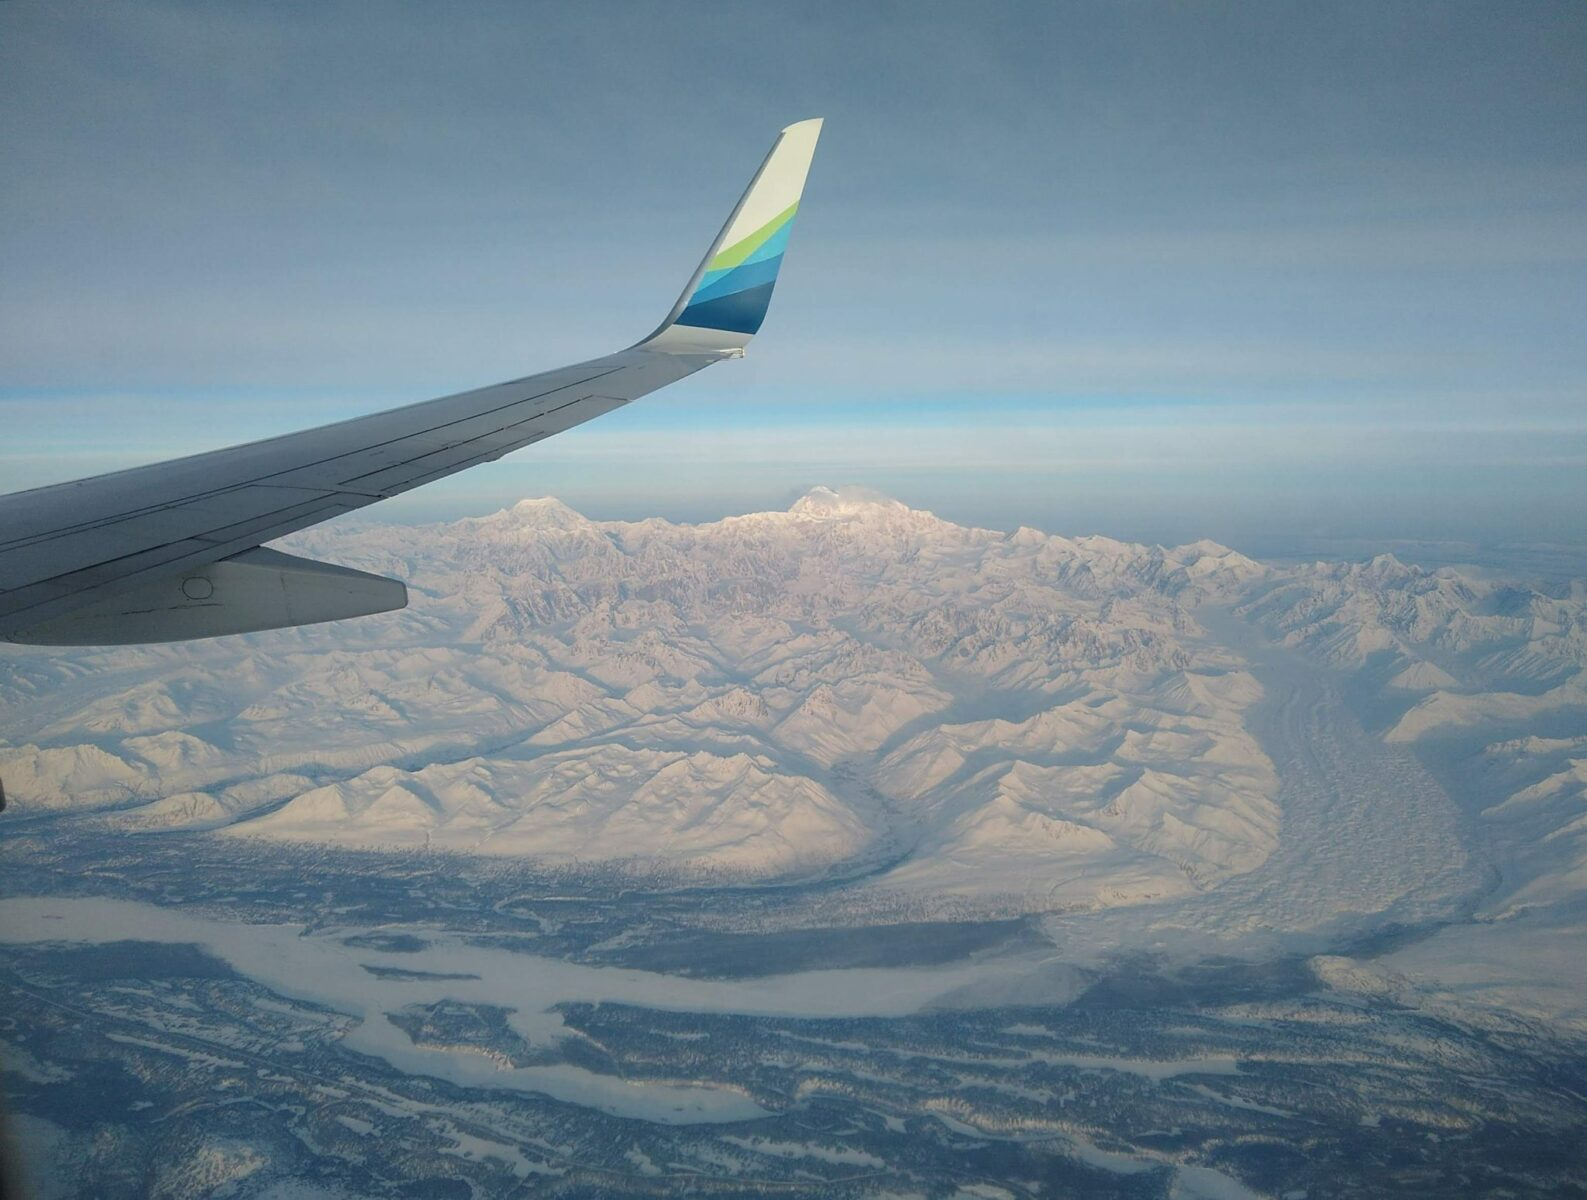 An airplane wing with Denali, glacier, other mountains and the Susitna River below, flying over Alaska in winter